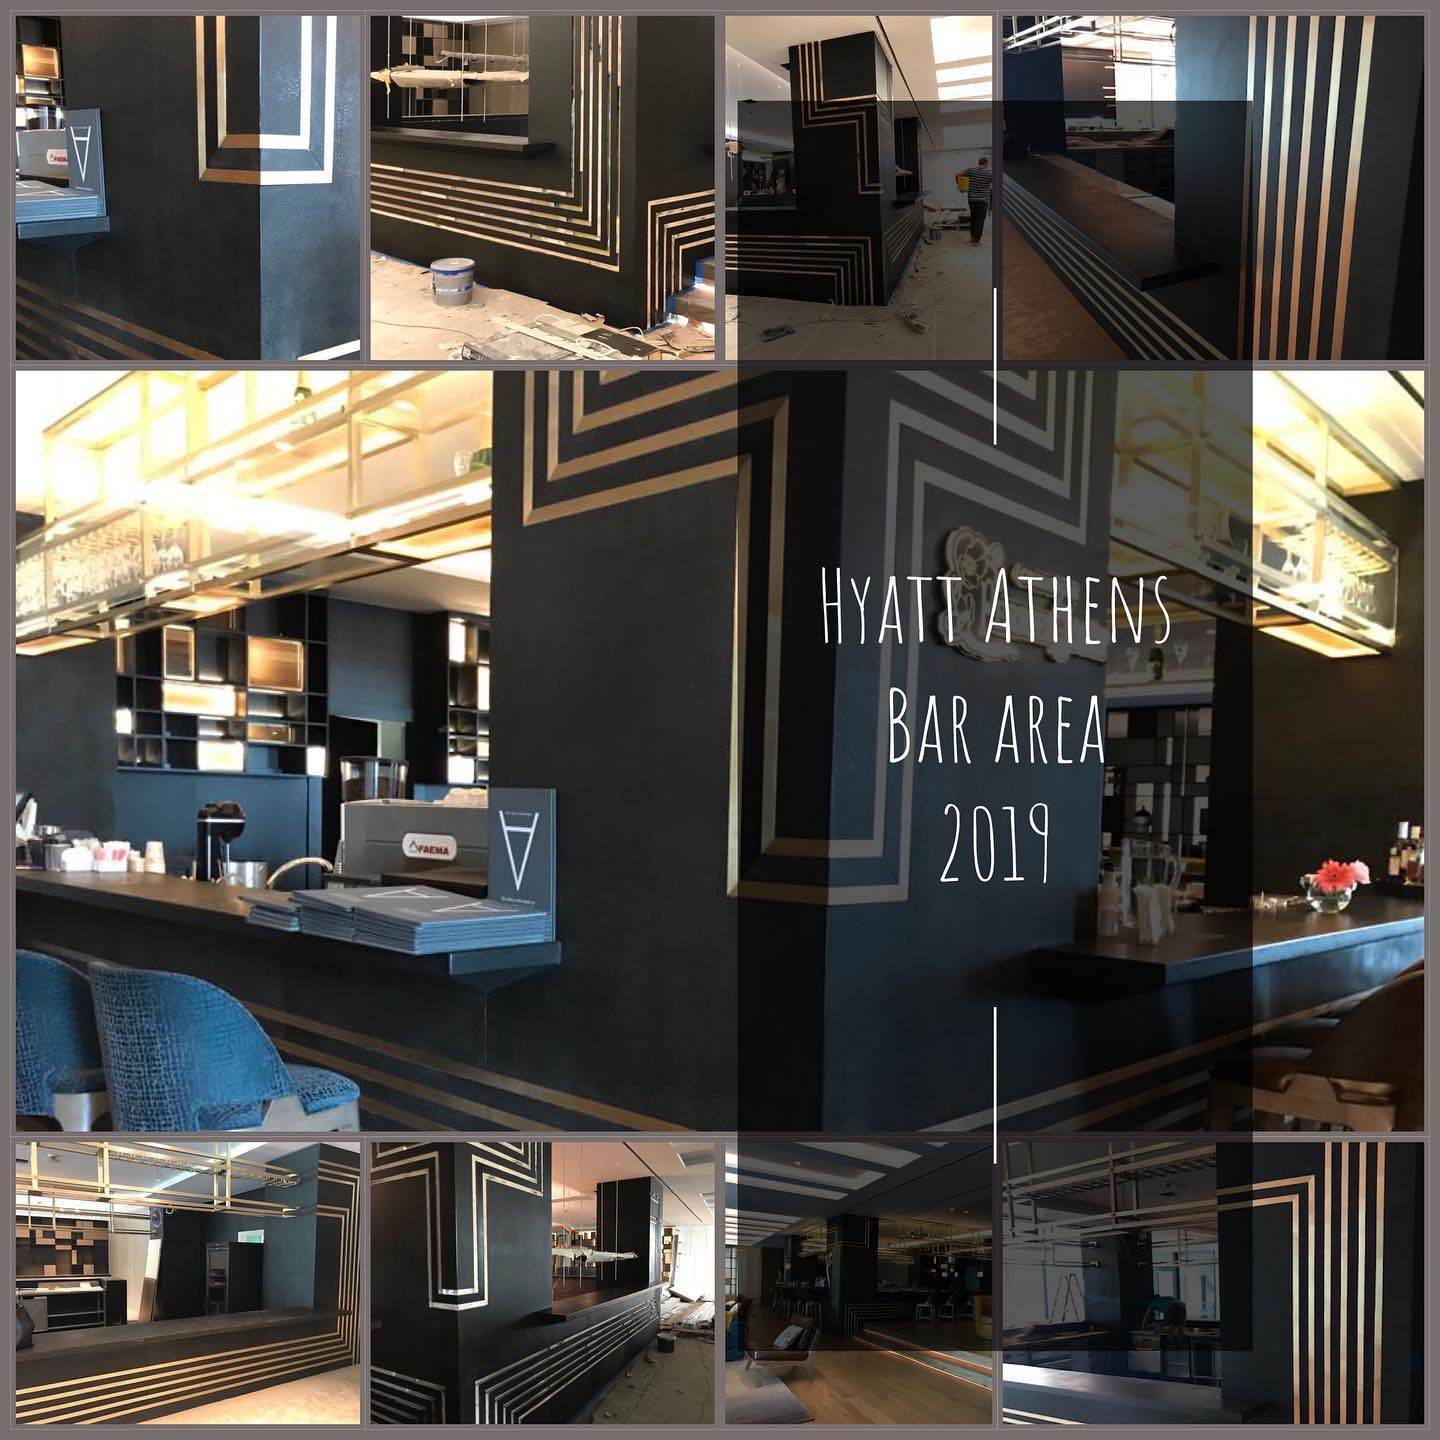 Grand Hyatt Bar Area Athens 2019